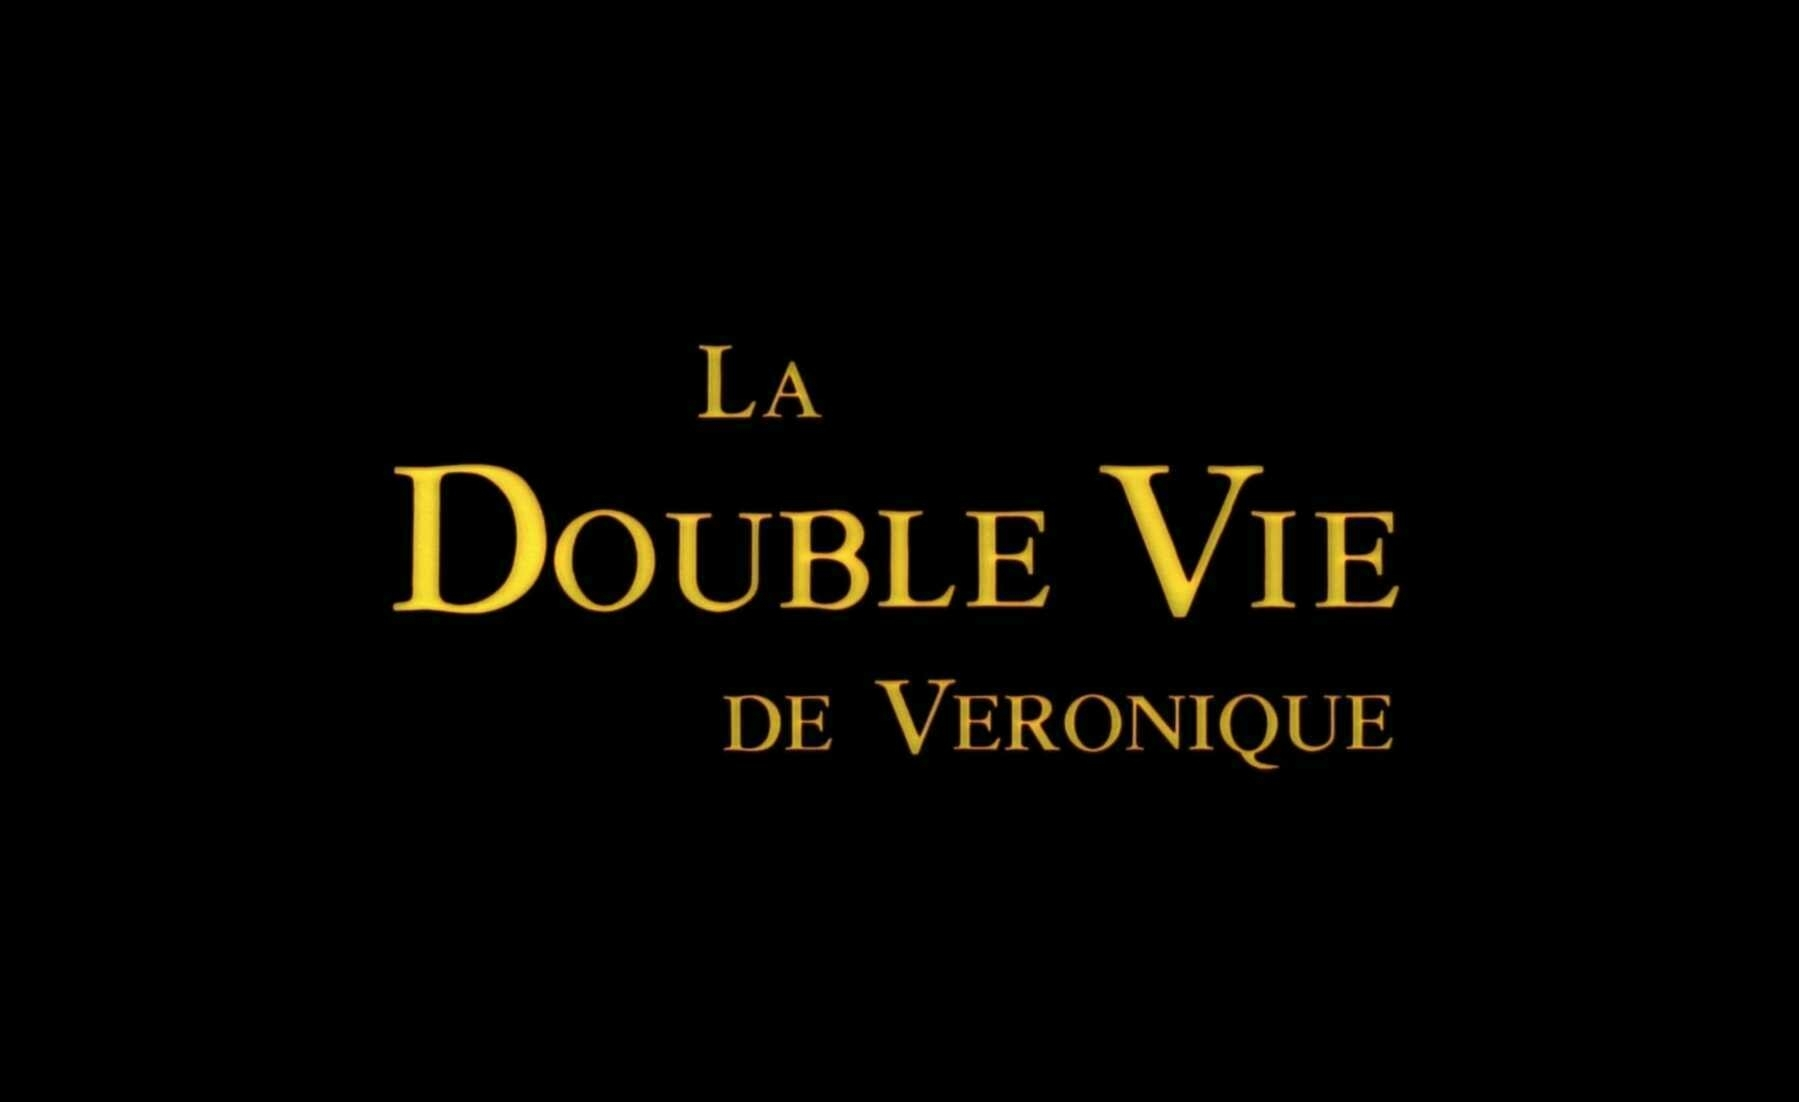 The title card for the film, The Double Life of Véronique.